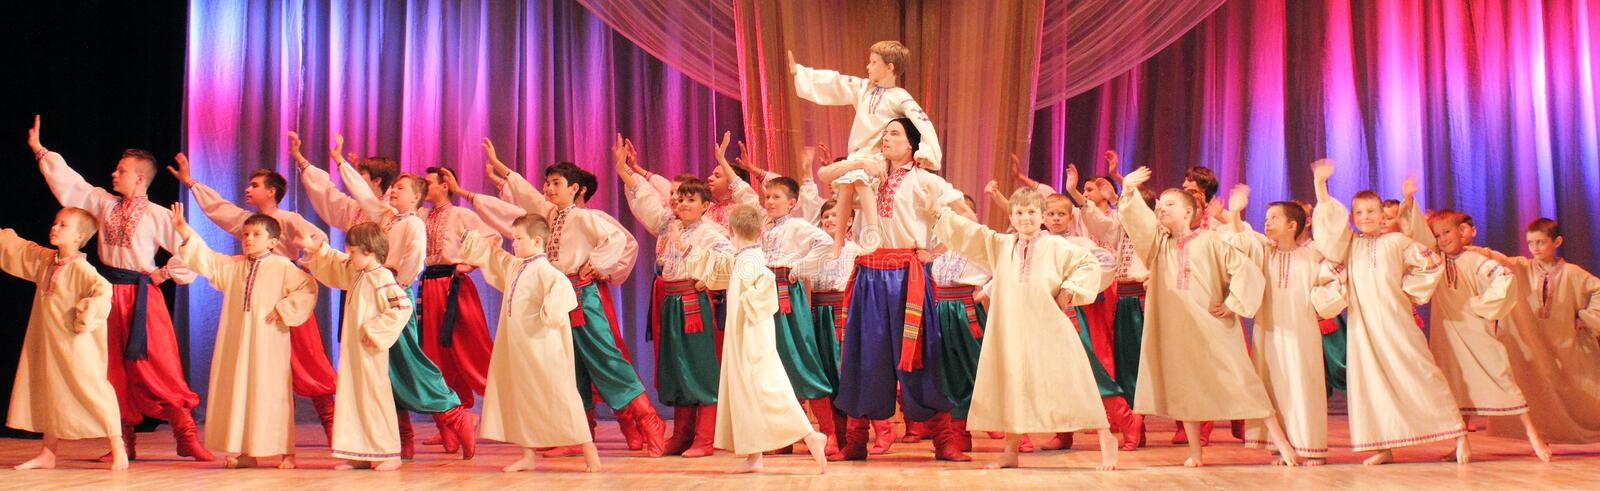 Dance Ensemble. Of the Ukrainian national dance. Kiev. Palace of Children and Youth. 2015 royalty free stock image